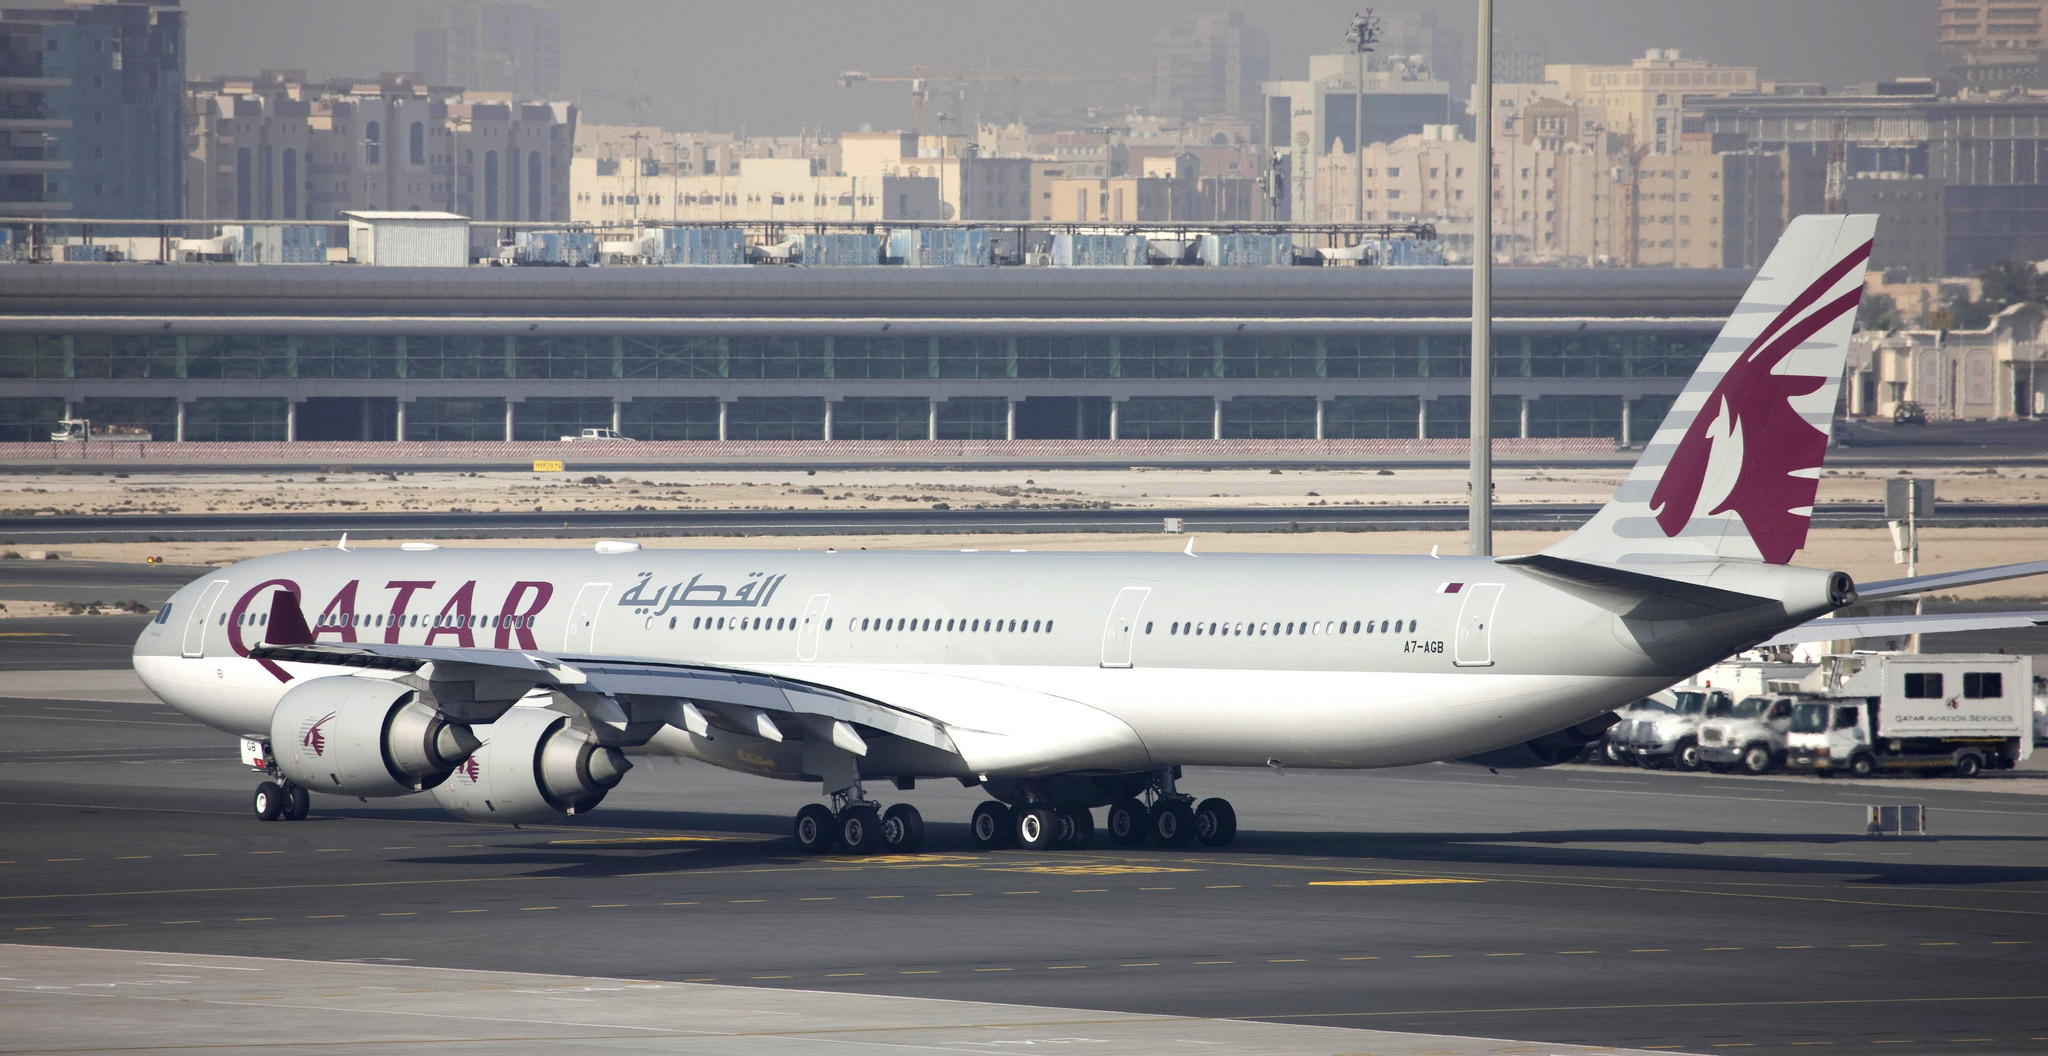 A Qatar Airways wide body jet at its home base. Credit: Qatar Airways